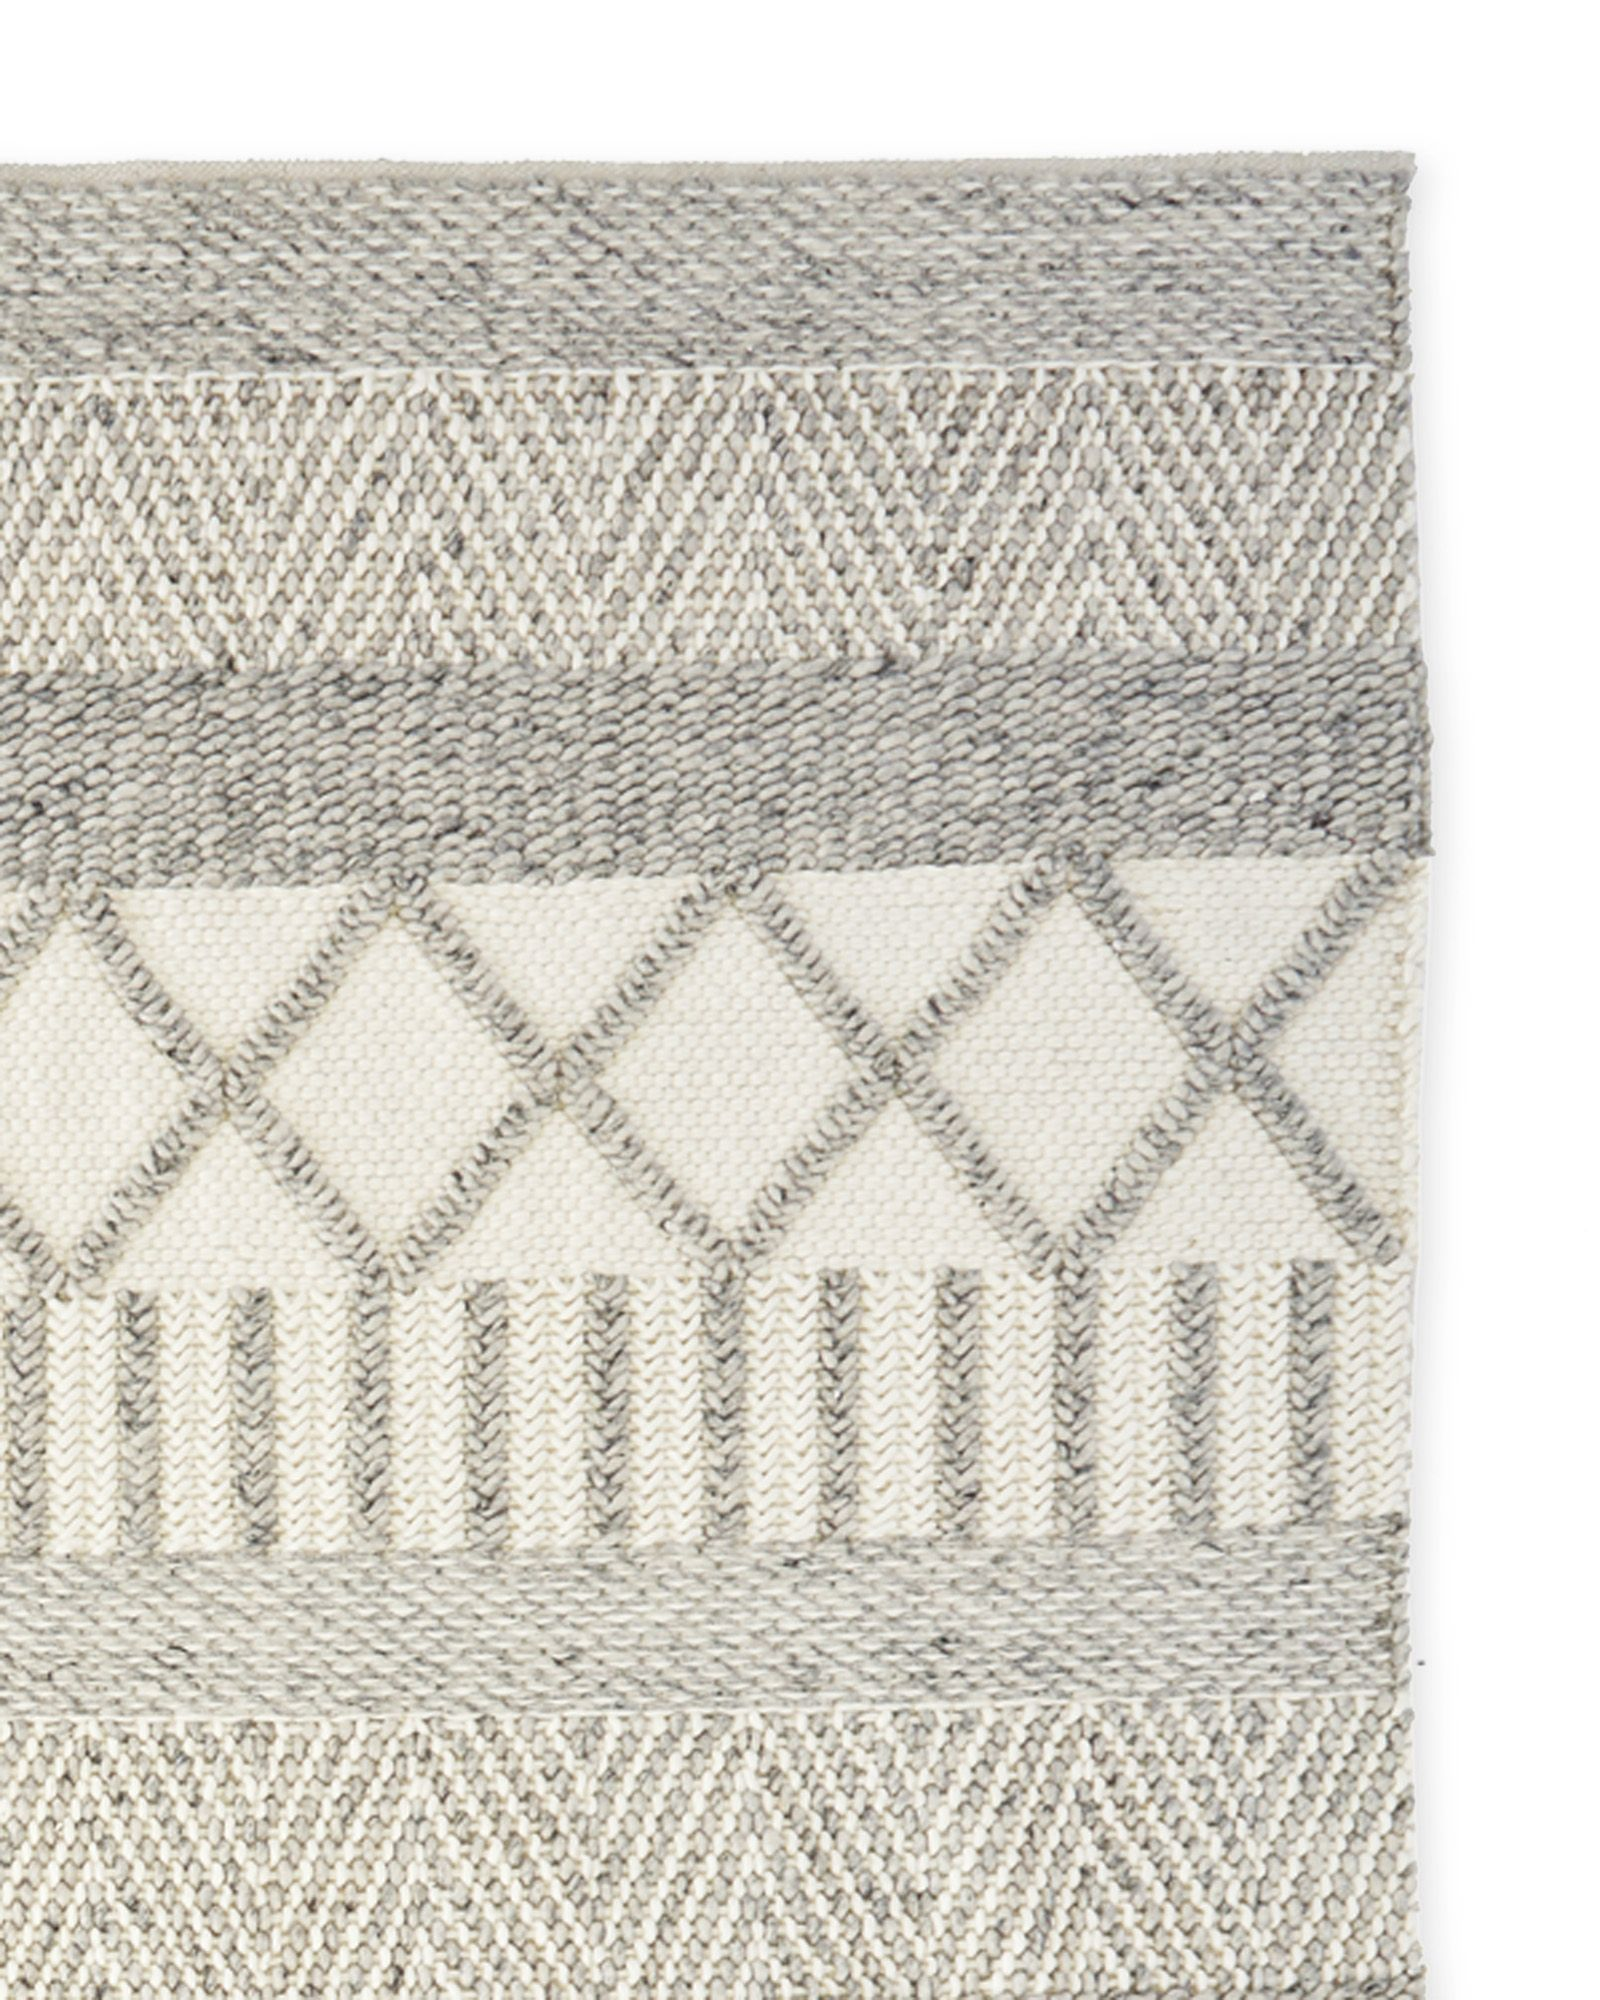 Pin By Solveig On Our Home In 2020 Scandinavian Rug Wool Rug Cozy Rugs